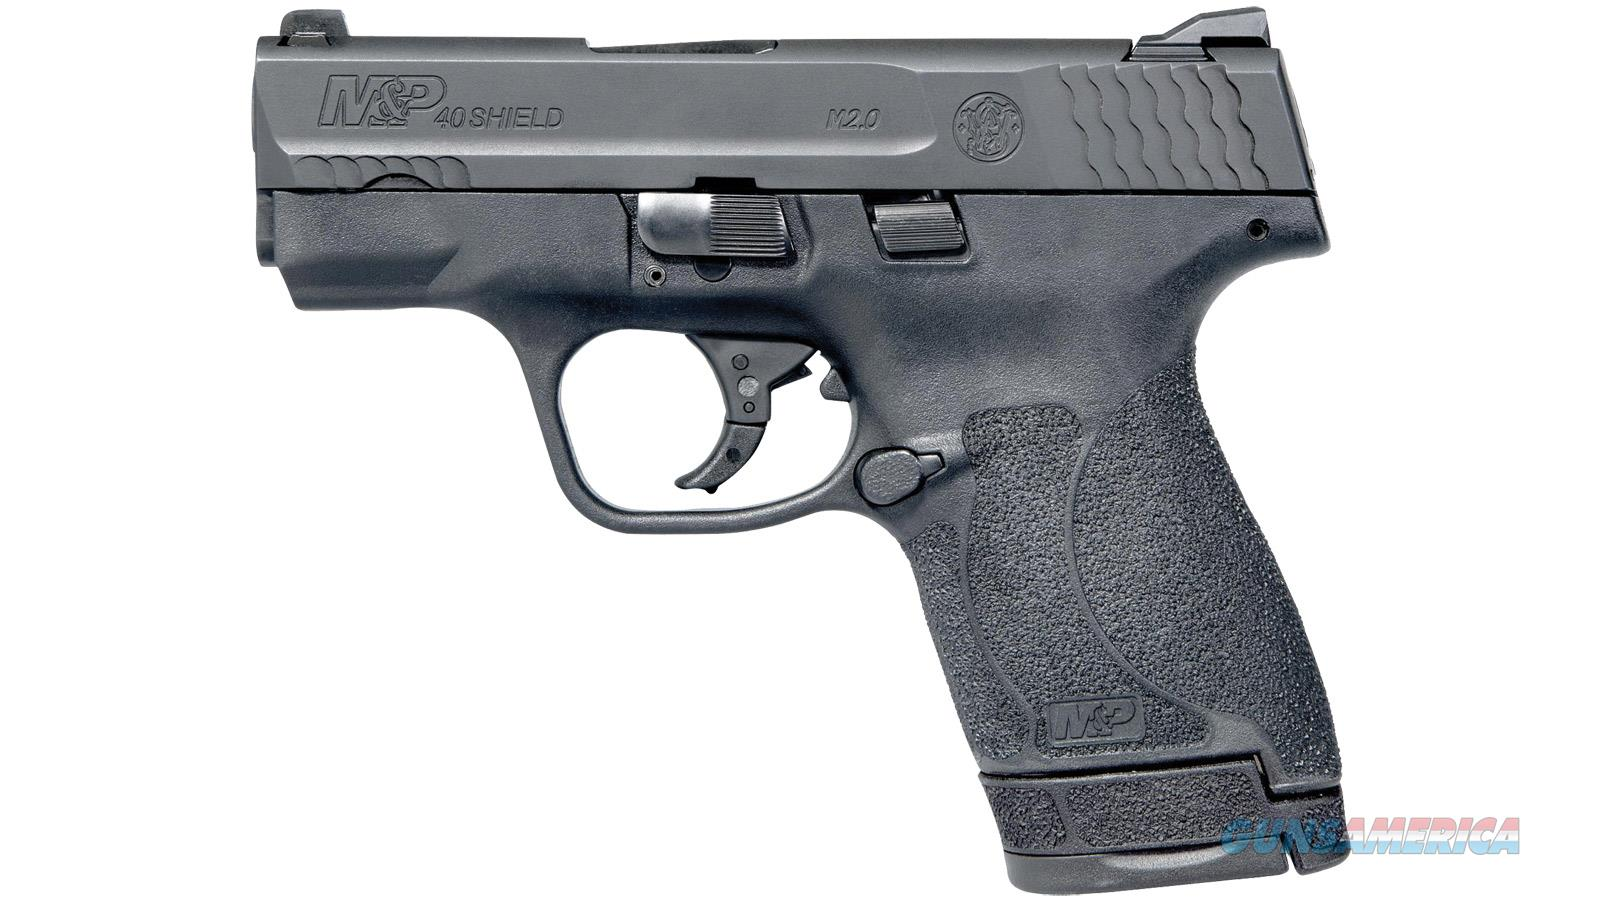 "Smith & Wesson M&P M2.0 Shld Ns 40Sw 3.1"" 11816  Guns > Pistols > S Misc Pistols"